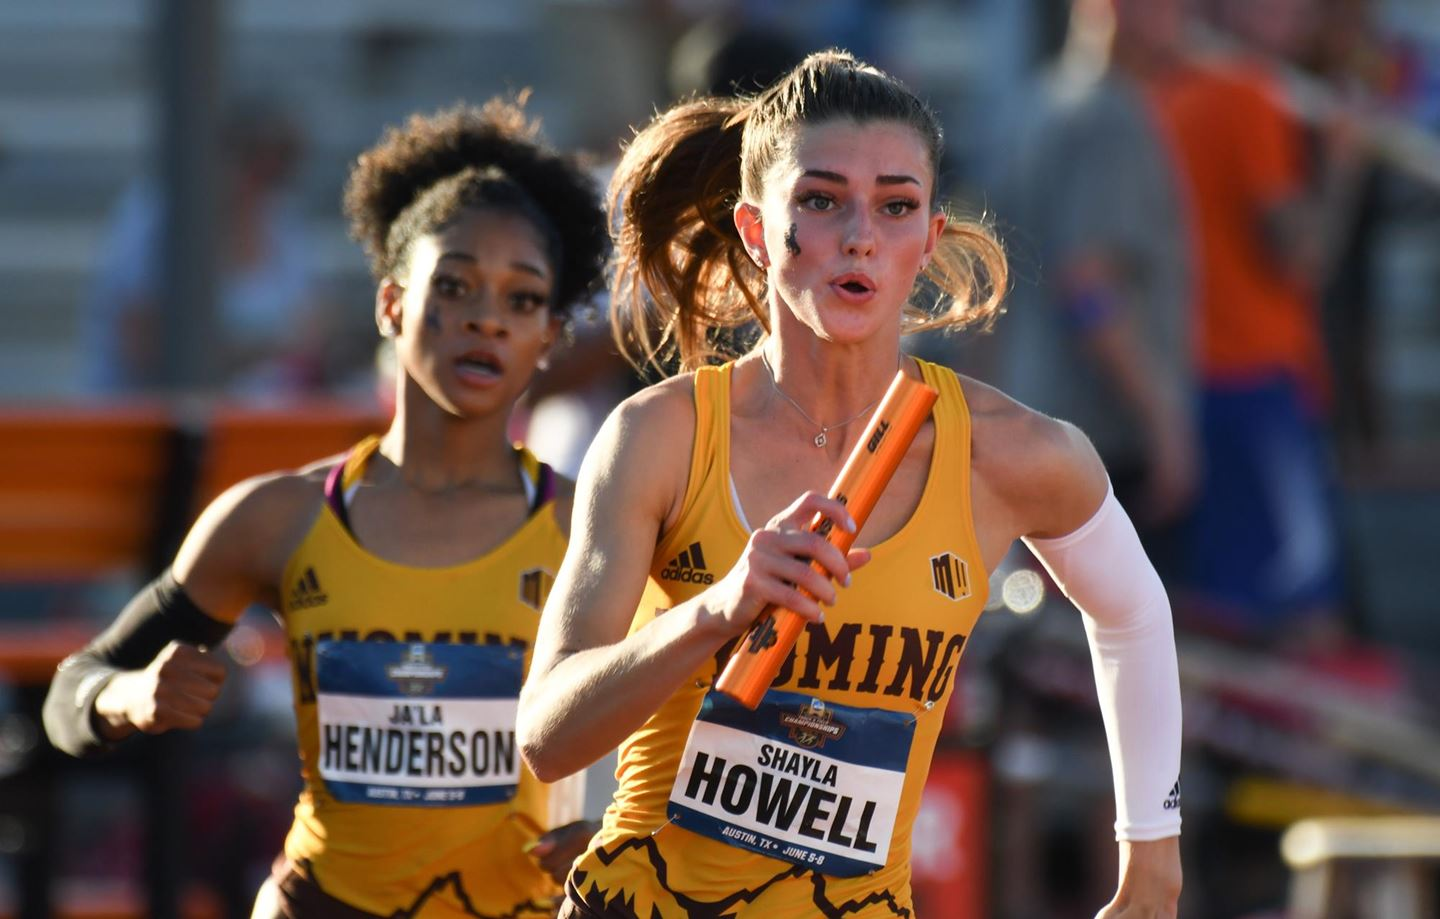 Cowgirls Earn Six All-America Honors at NCAA Outdoor Track & Field Championships